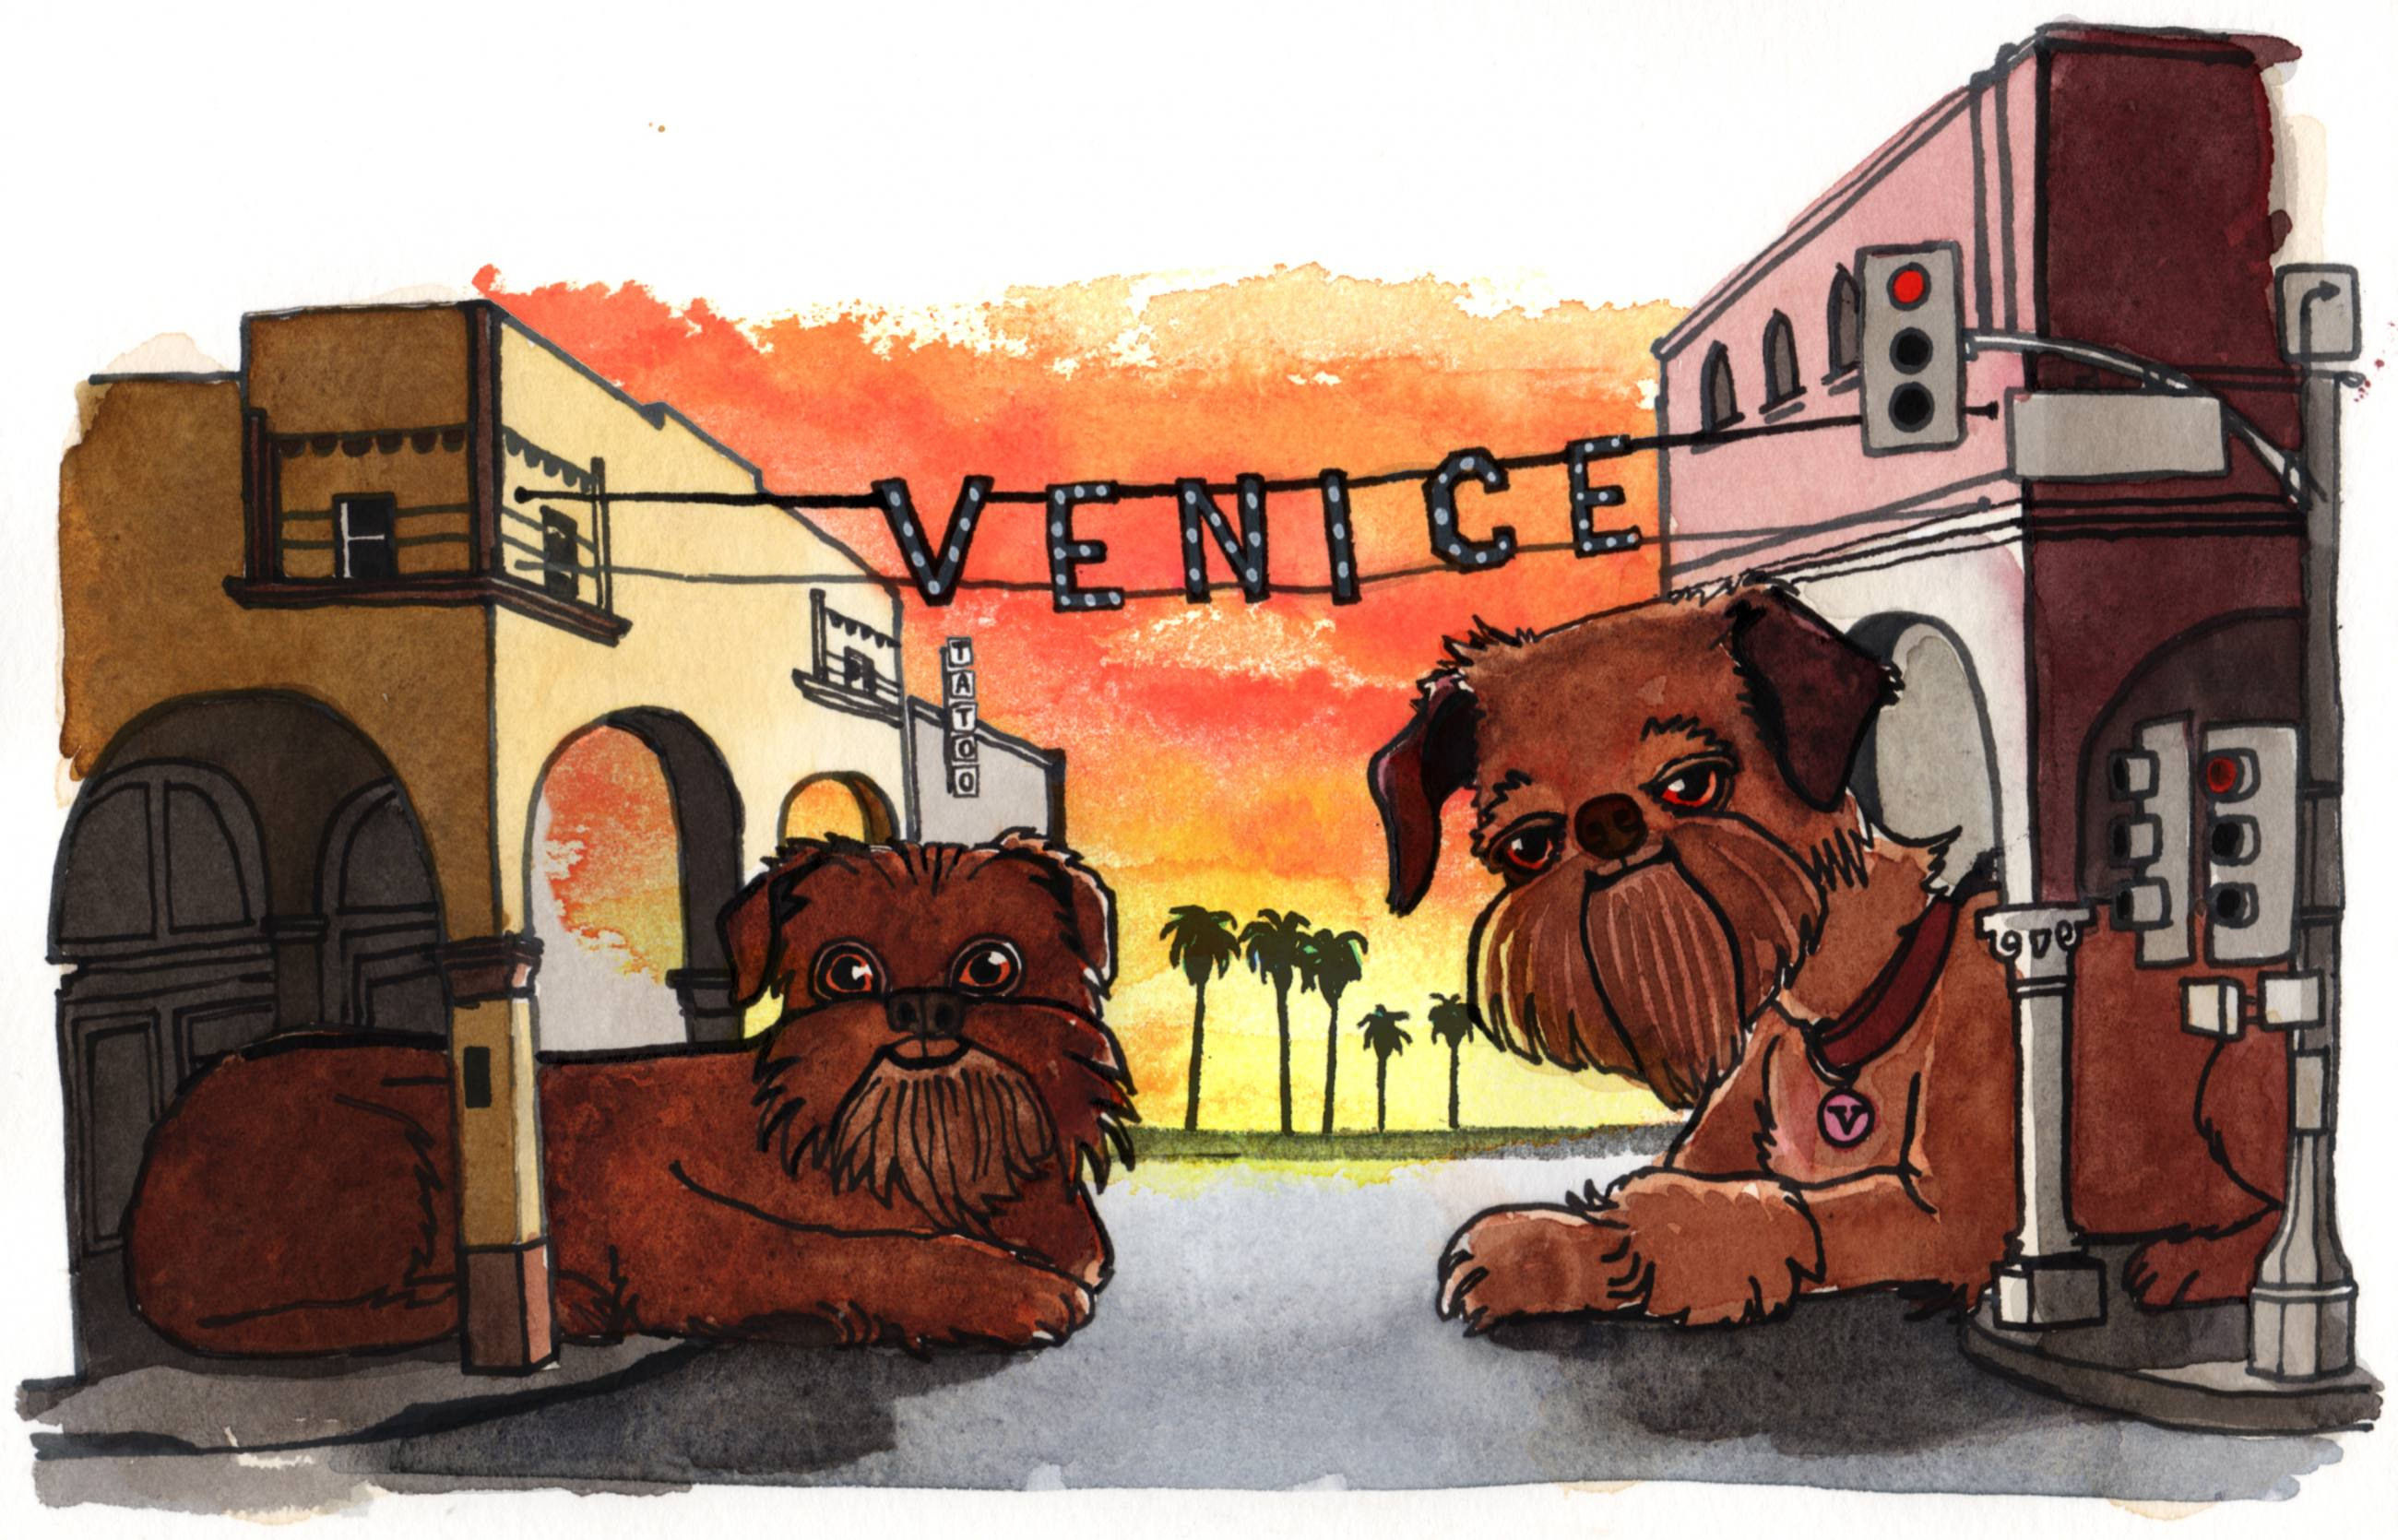 Brussels Griffon at the Venice Sign | Illustration by Max Kornell